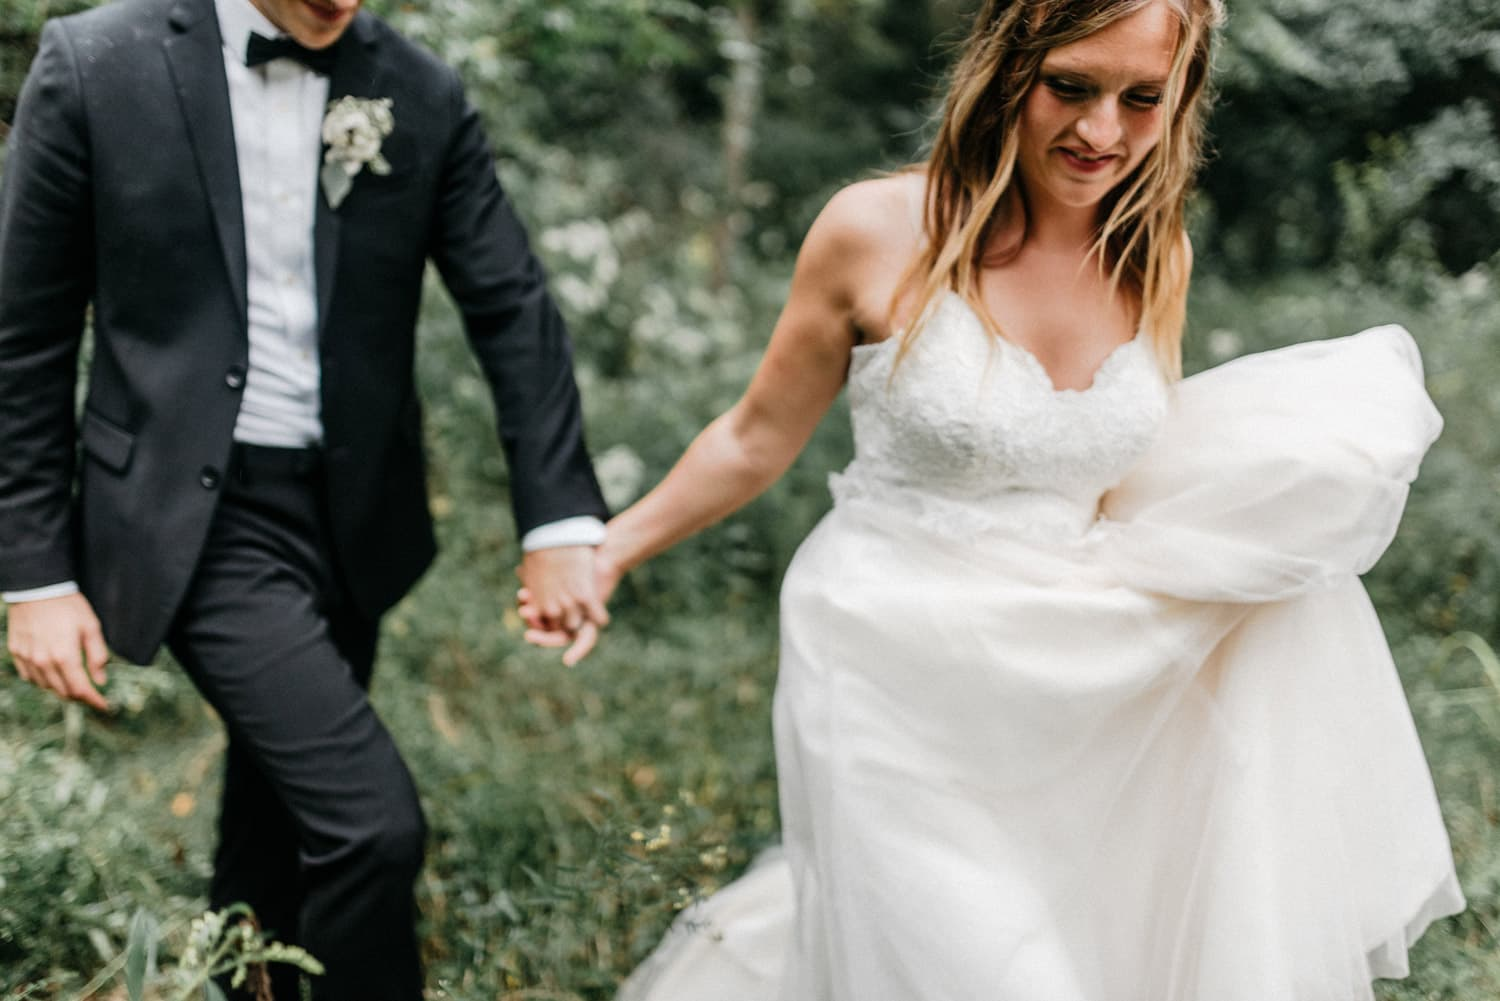 bride and groom walk together during portraits